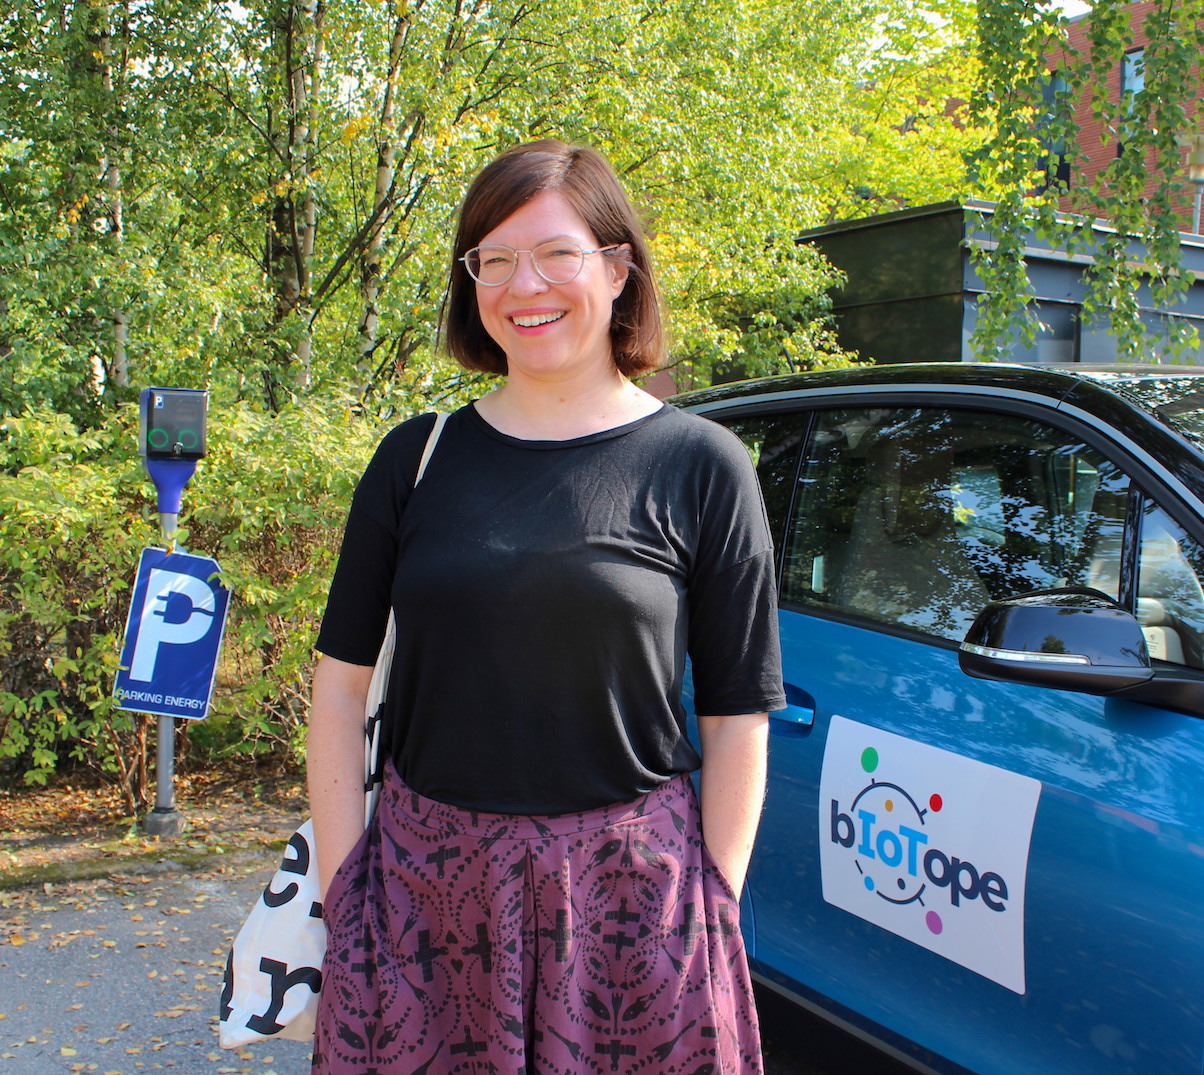 Finland creates smart charging for electric cars – BMW tests solution